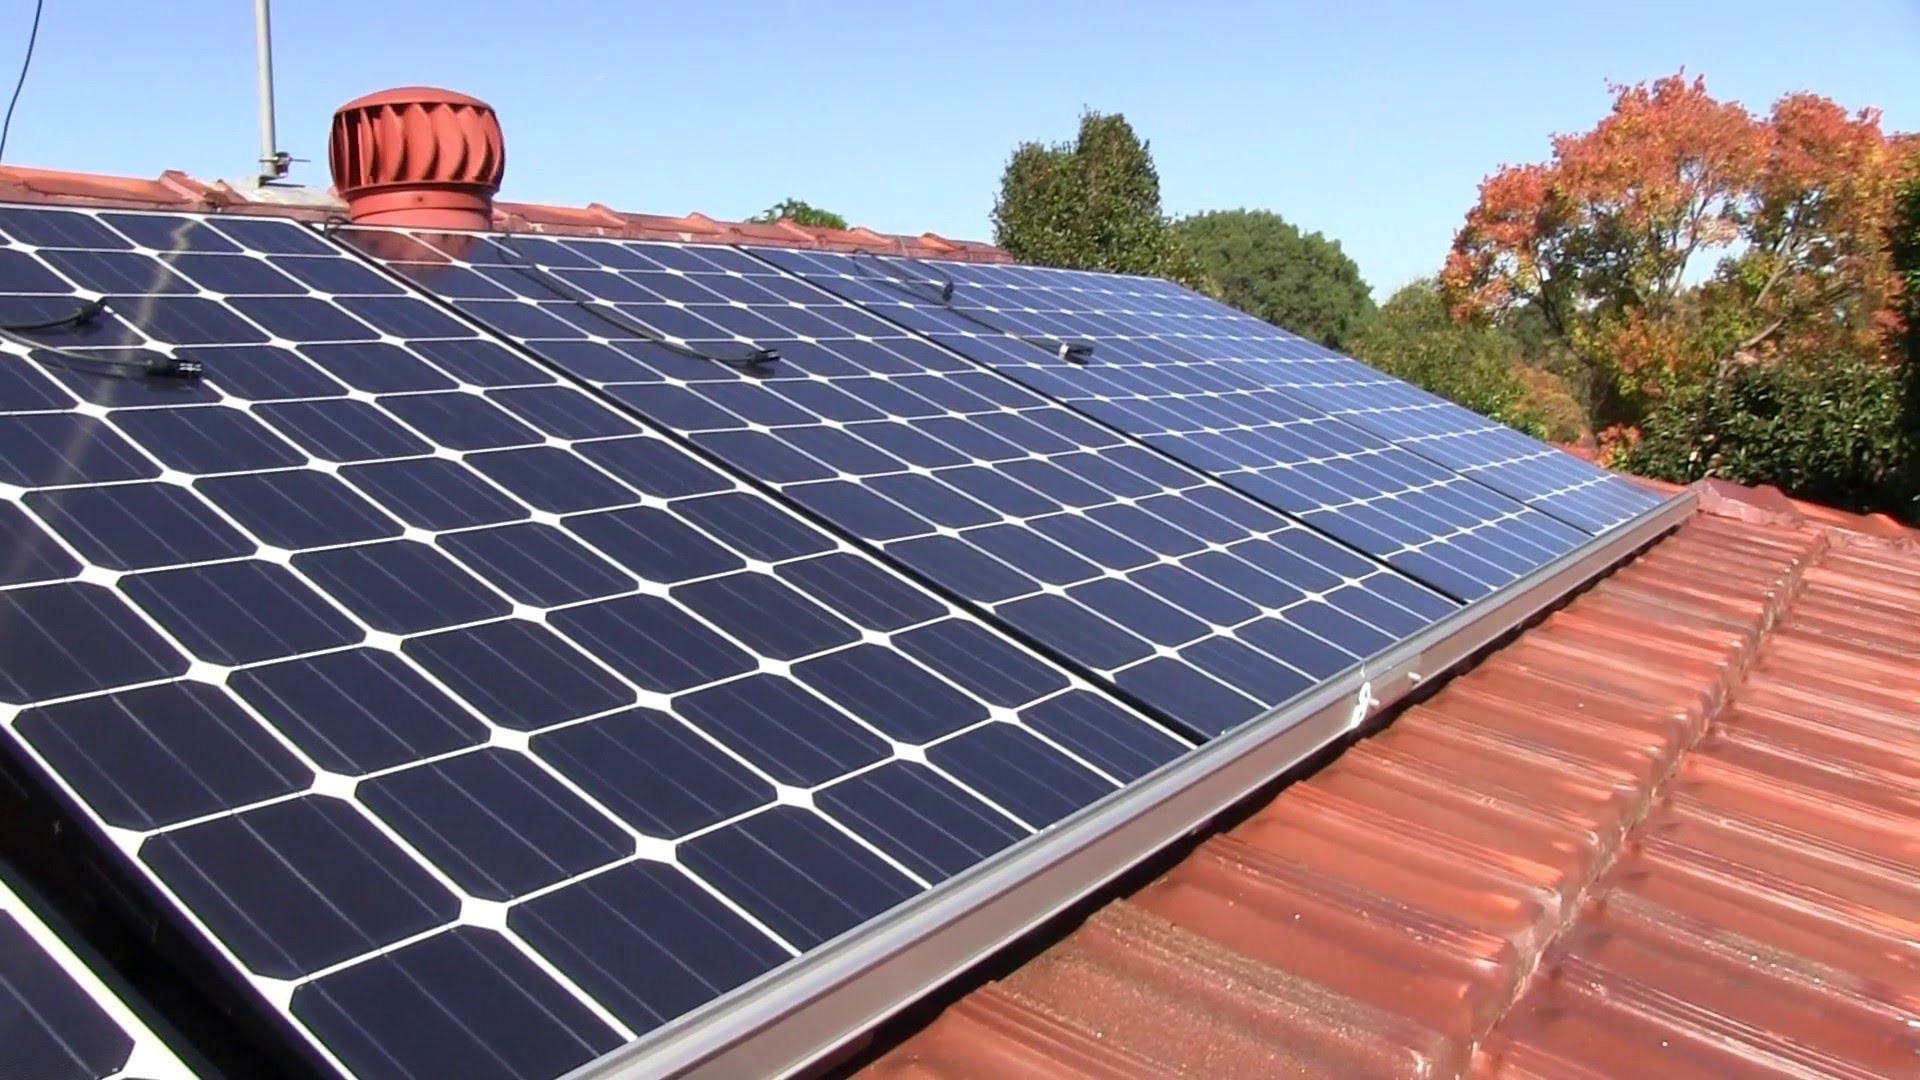 Solar Panels For Your Home >> Solar Panels A Green Choice For Your Home Ohsolarmio Medium